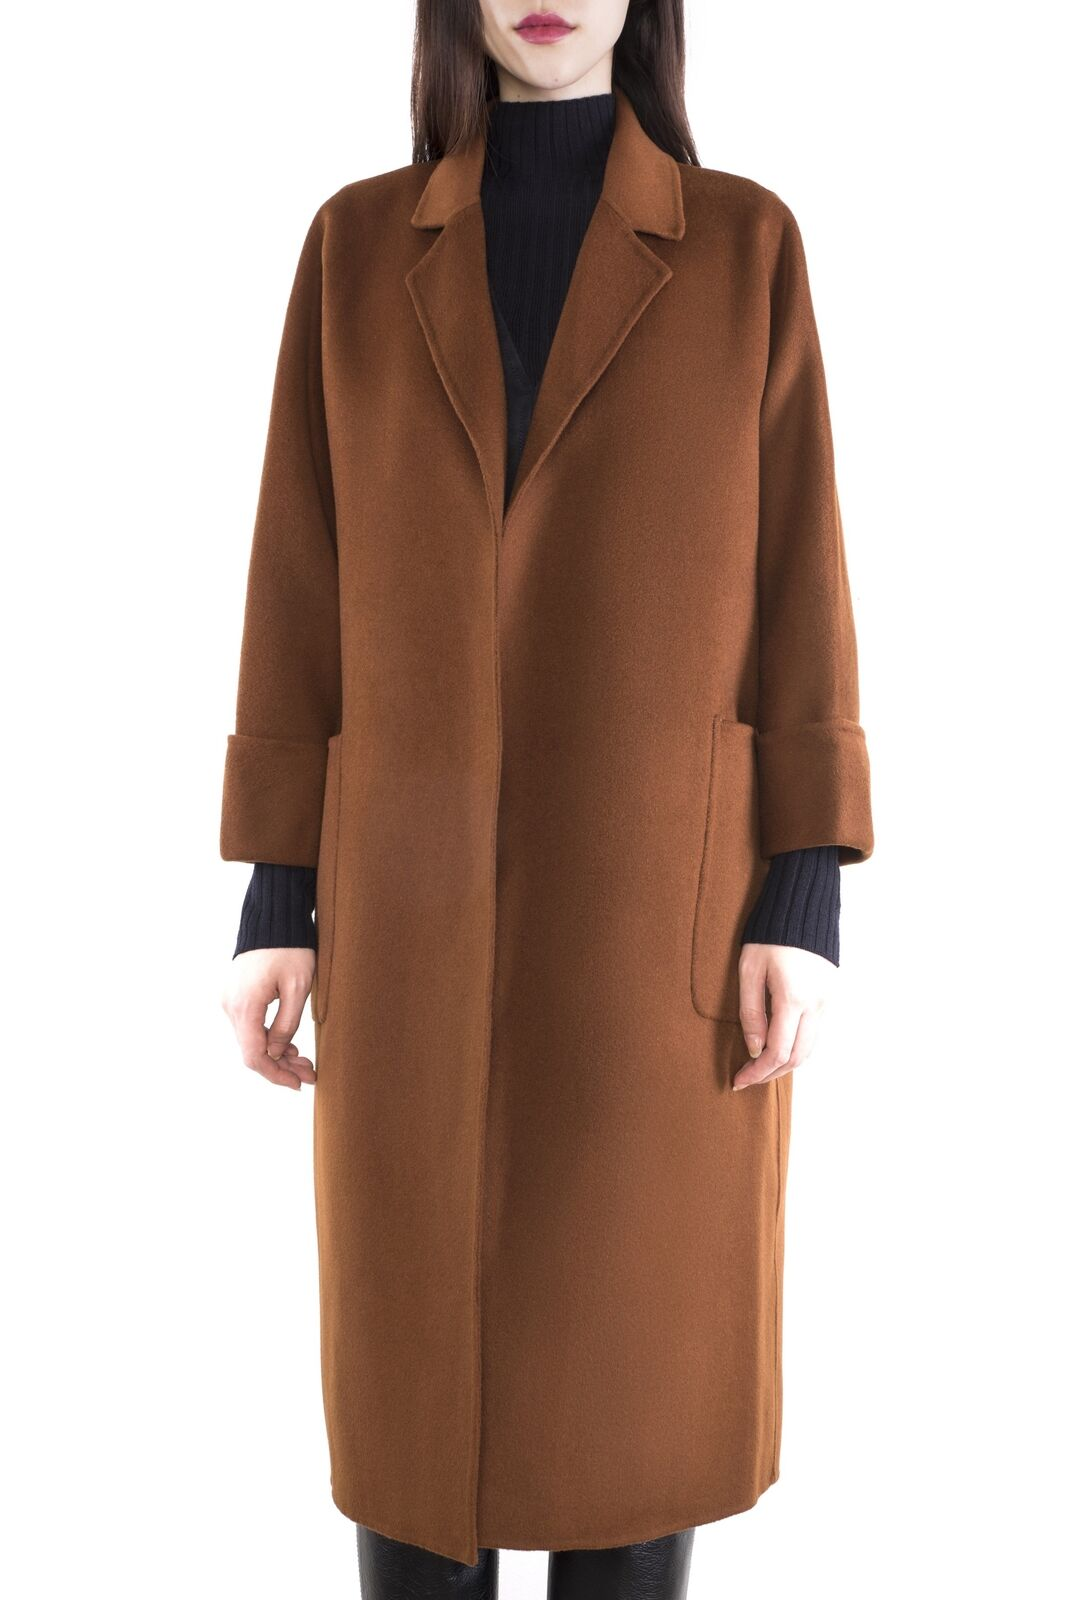 Two-Sided Pure Cashmere & Wool Hand-Stitched Drop Shoulder Loose Fit Long Coat